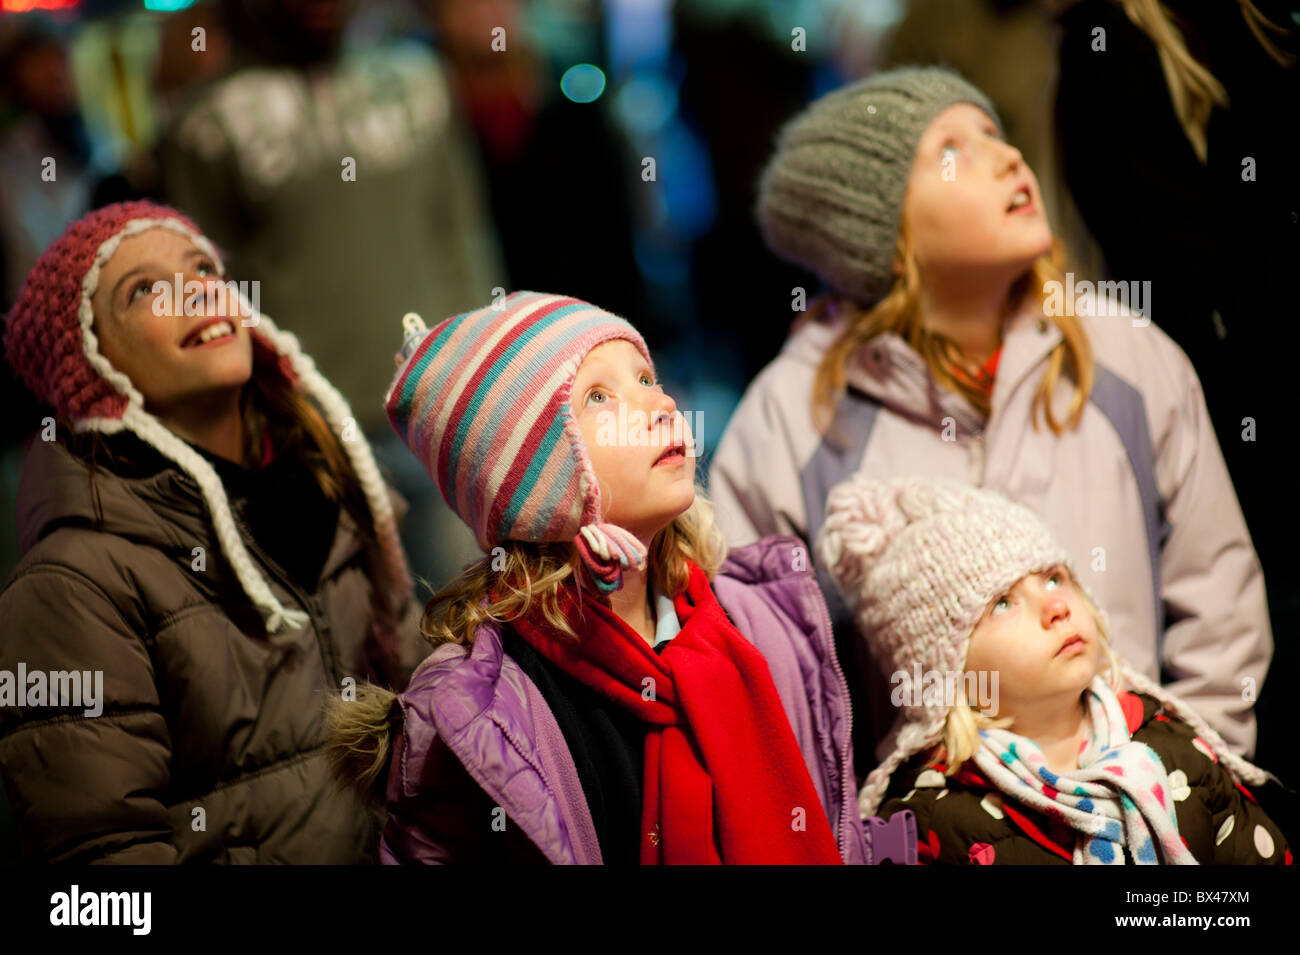 Young children looking entranced at Aberystwyth November Fair , Wales UK - Stock Image